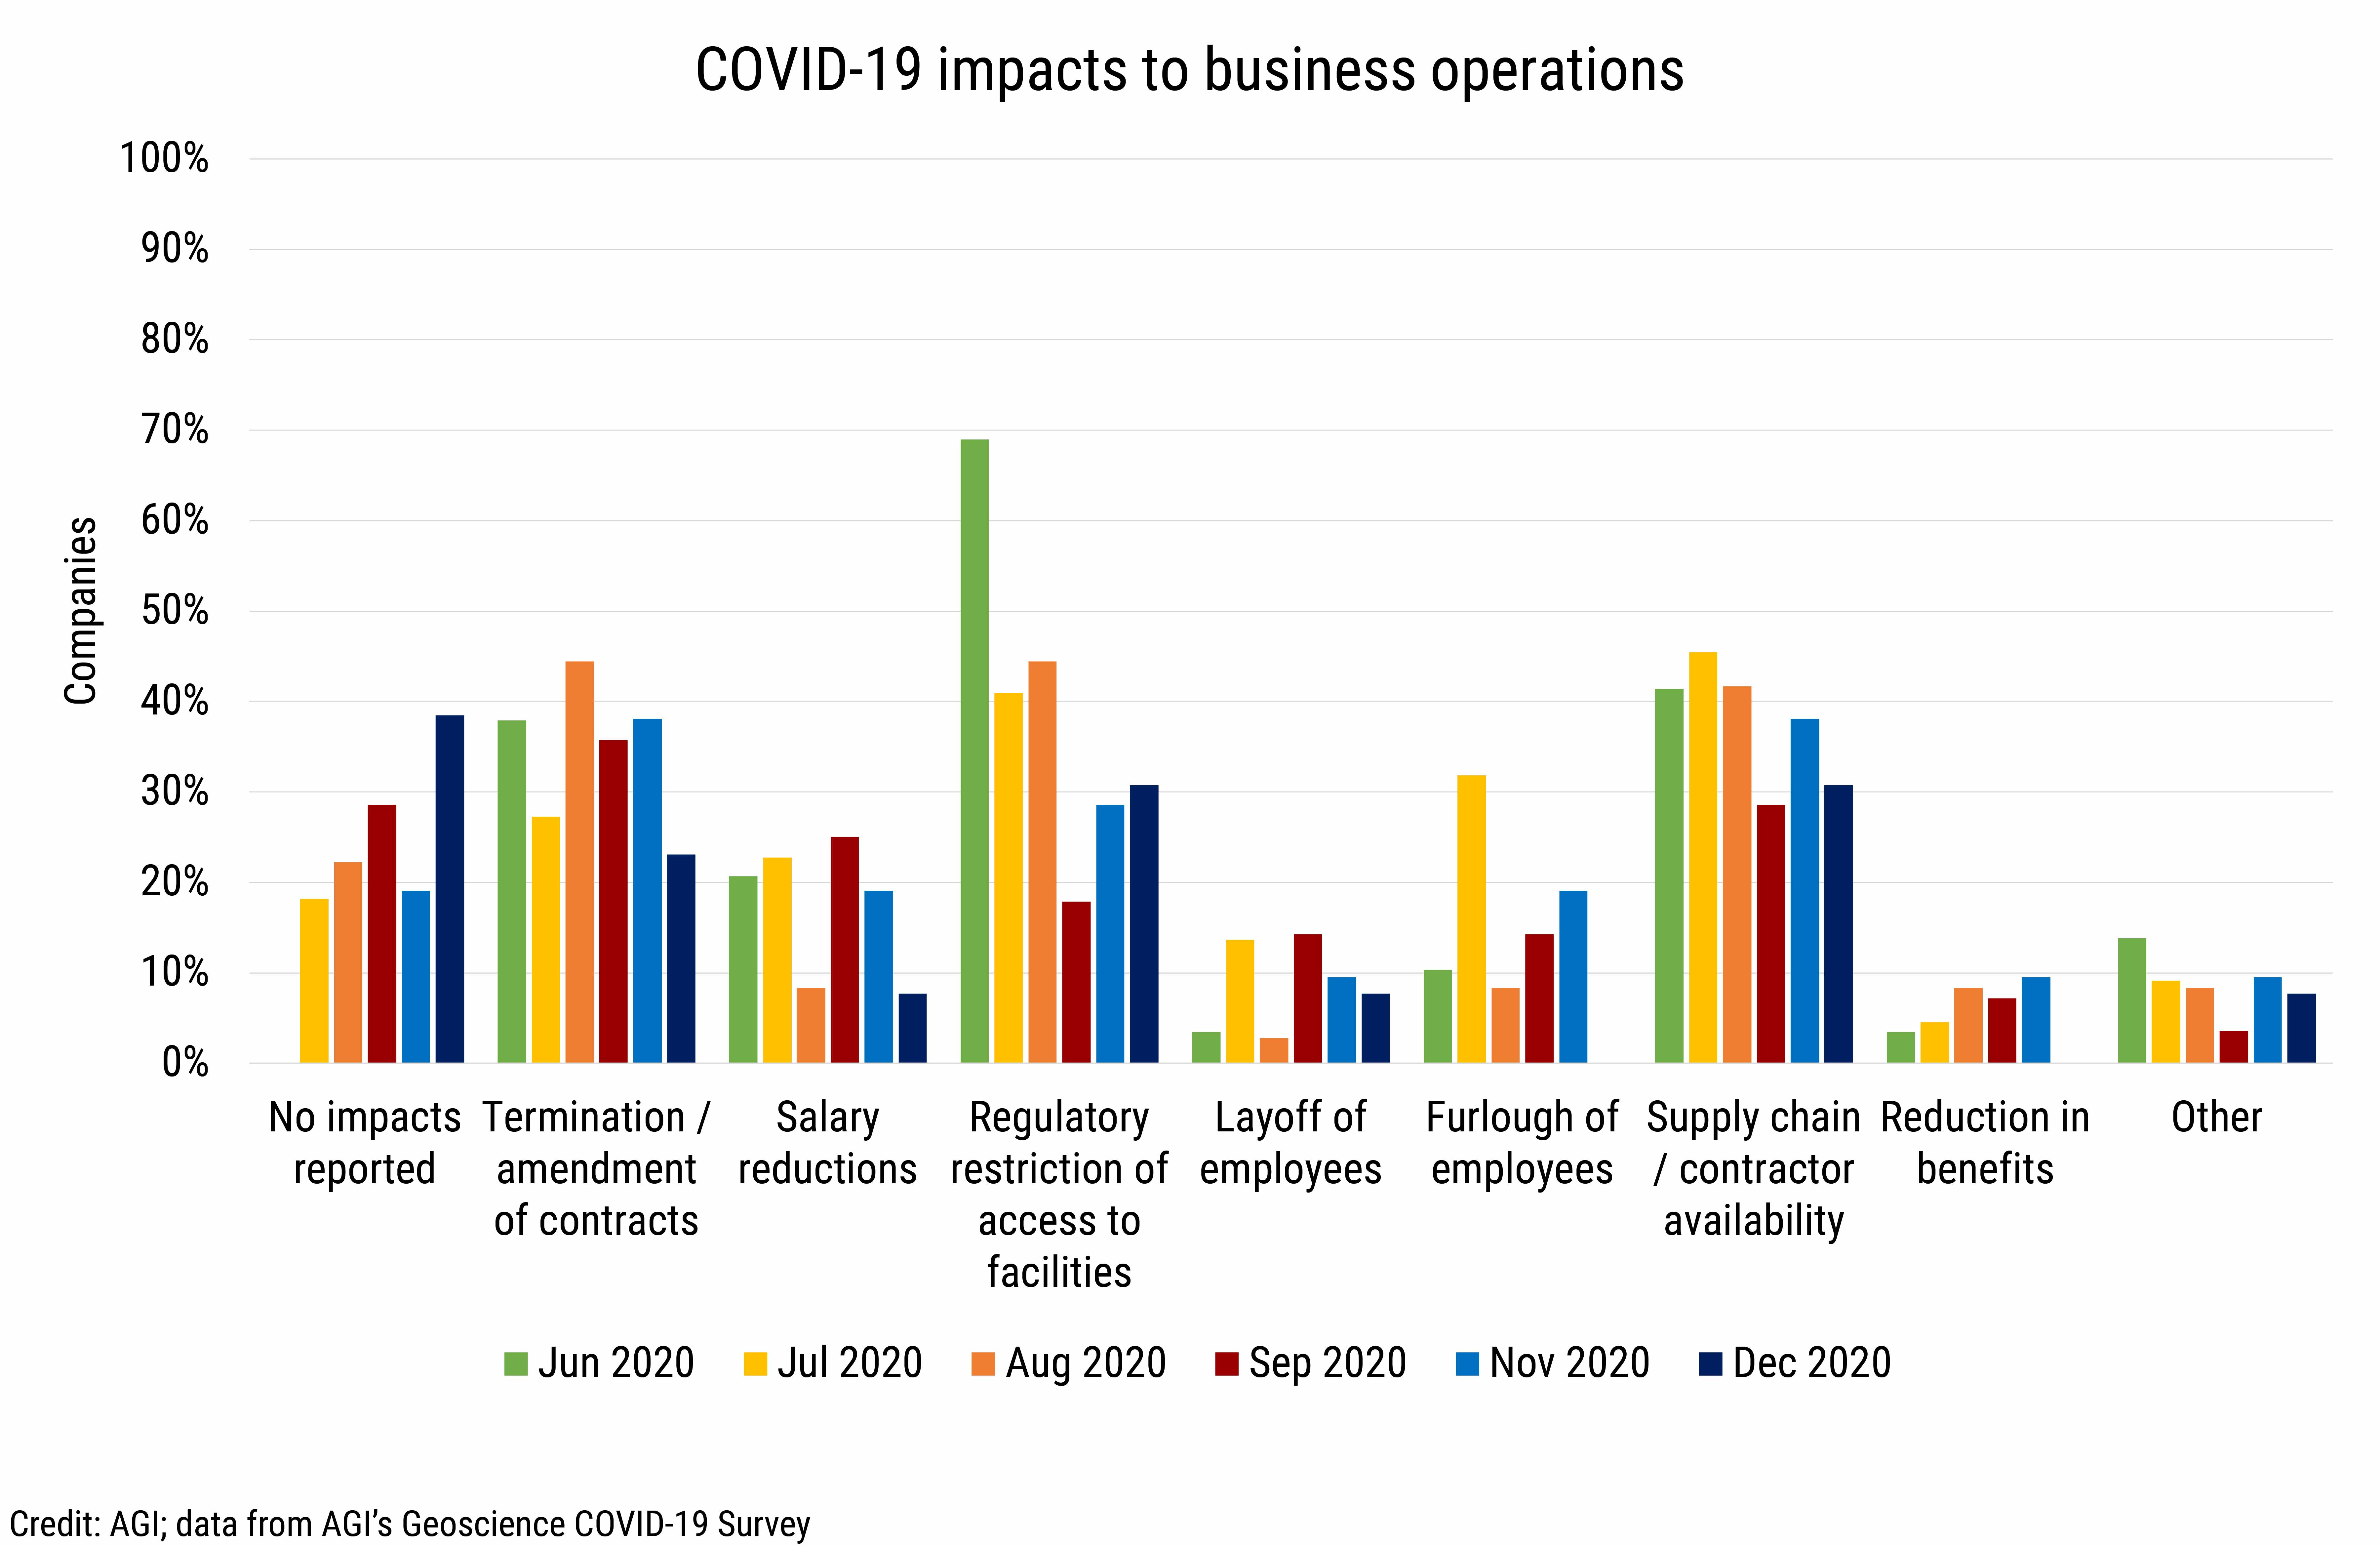 DB_2021-004_chart04: COVID-19 impacts to business operations (Credit: AGI; data from AGI's Geoscience COVID-19 Survey)